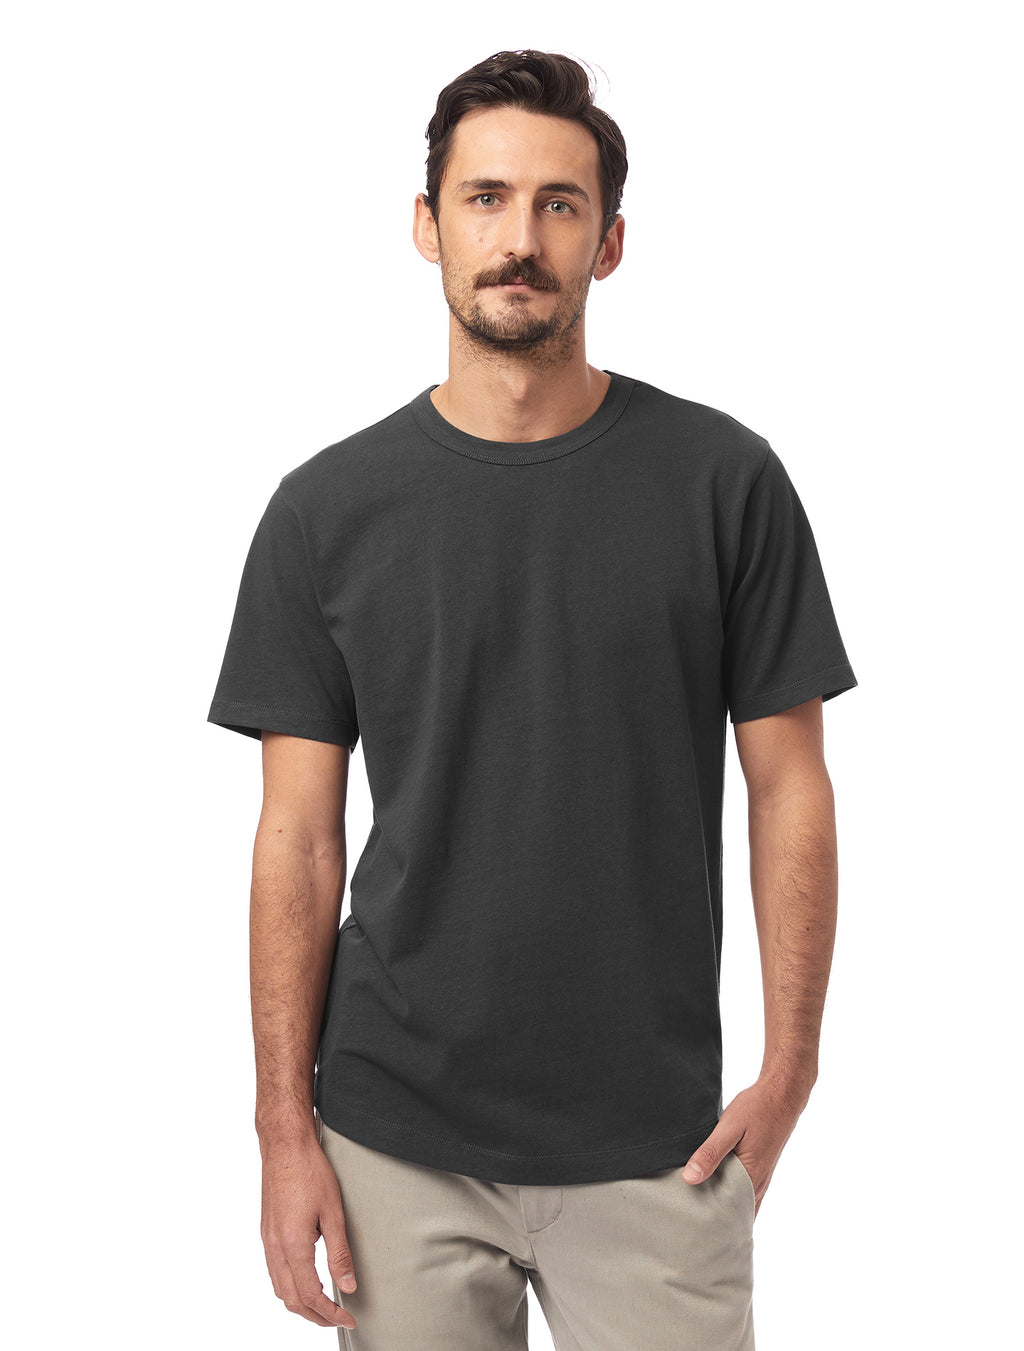 Alternative Apparel Hemp Blend T-Shirt- Shadow